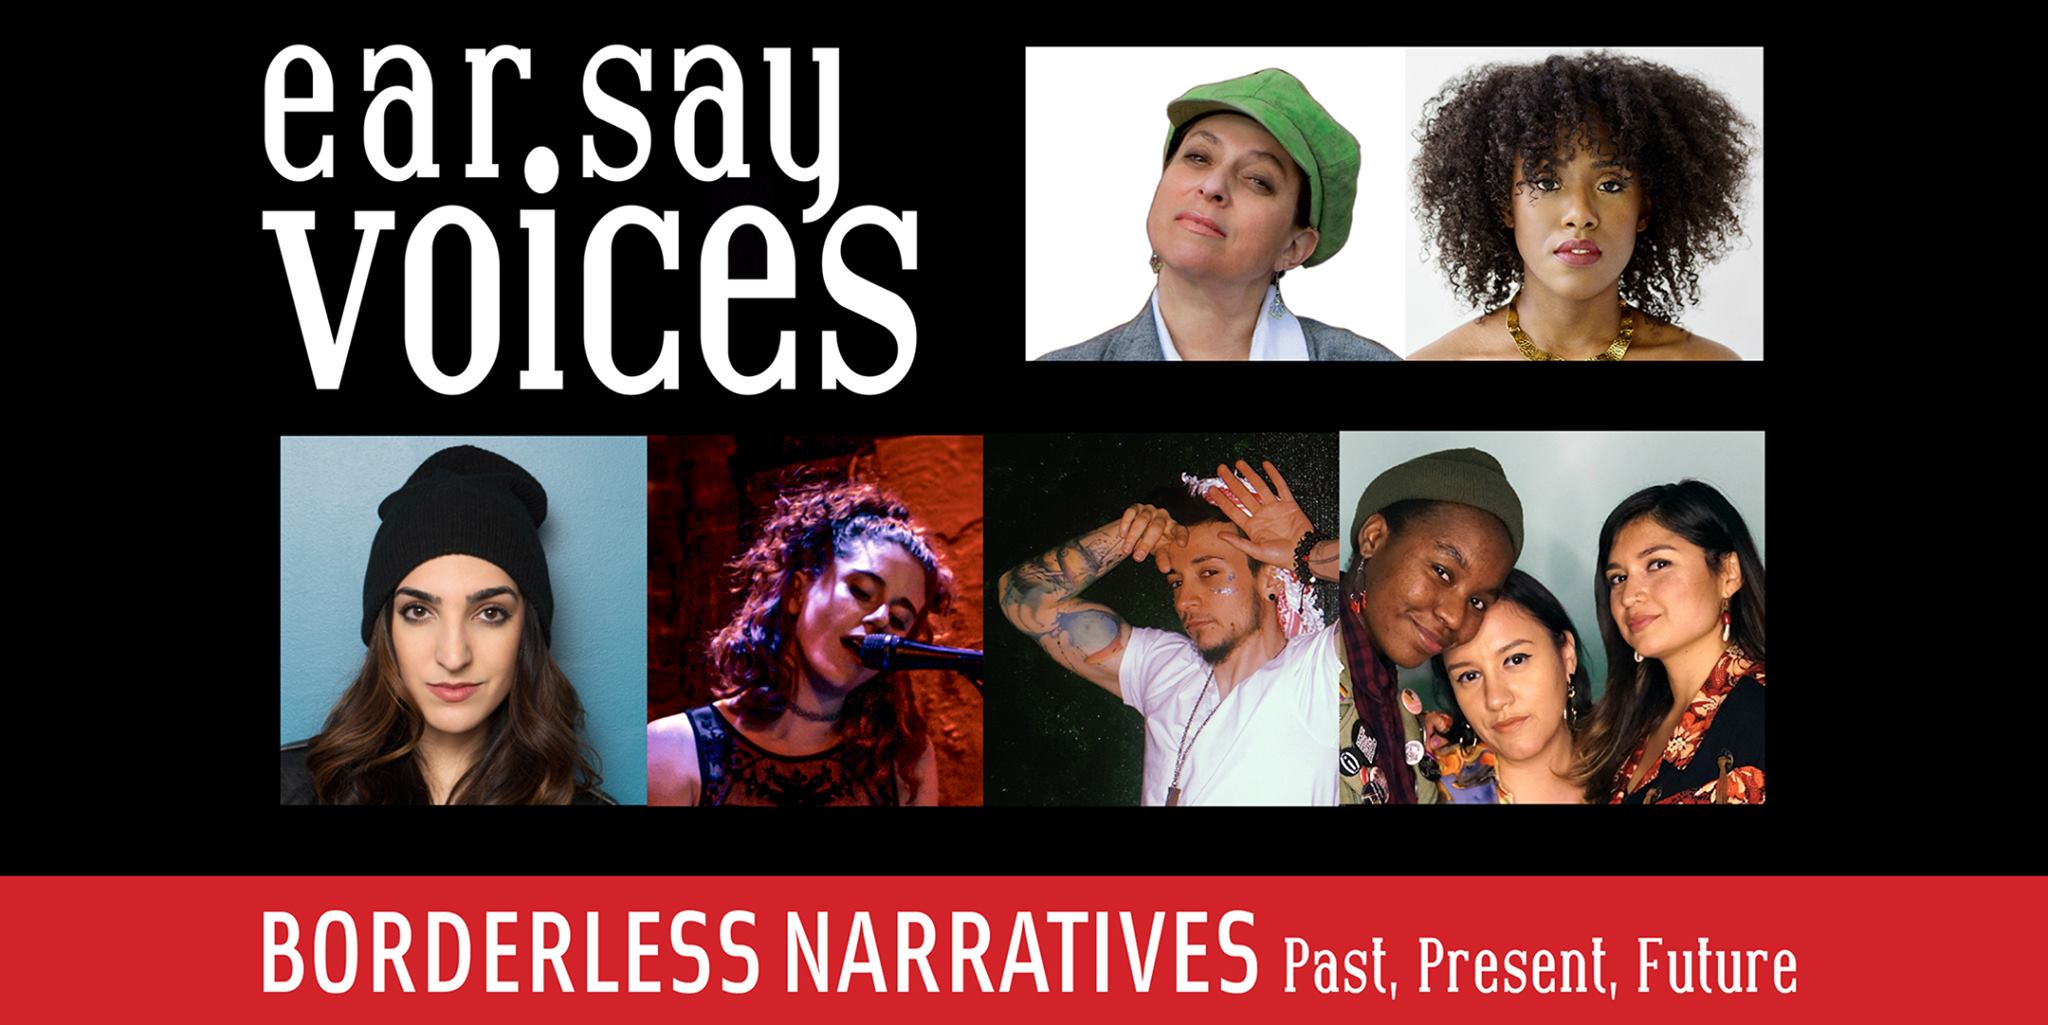 Borderless Narratives Past, Present, Future - Saturday, June 1st, 8pmCity Lore - 56 E 1st St, New York, New York, 10003An evening of stories, songs, monologues about migration, refuge and finding home.https://www.facebook.com/events/434684240659372/